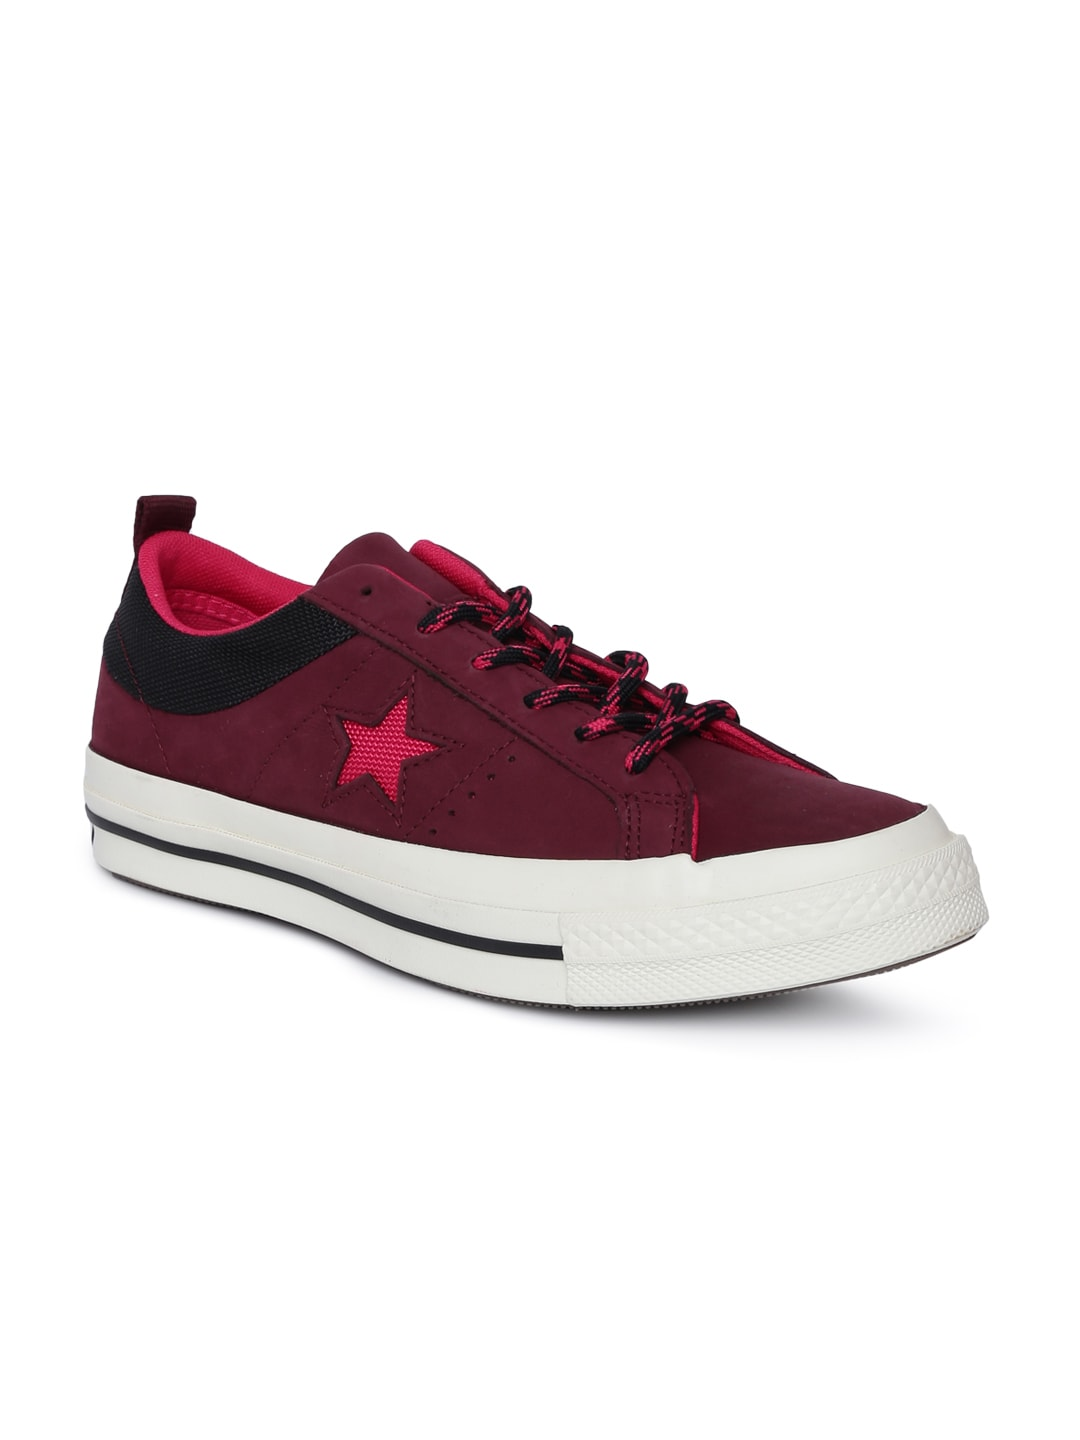 ebce87f7116934 Burgundy Casual Shoes - Buy Burgundy Casual Shoes online in India